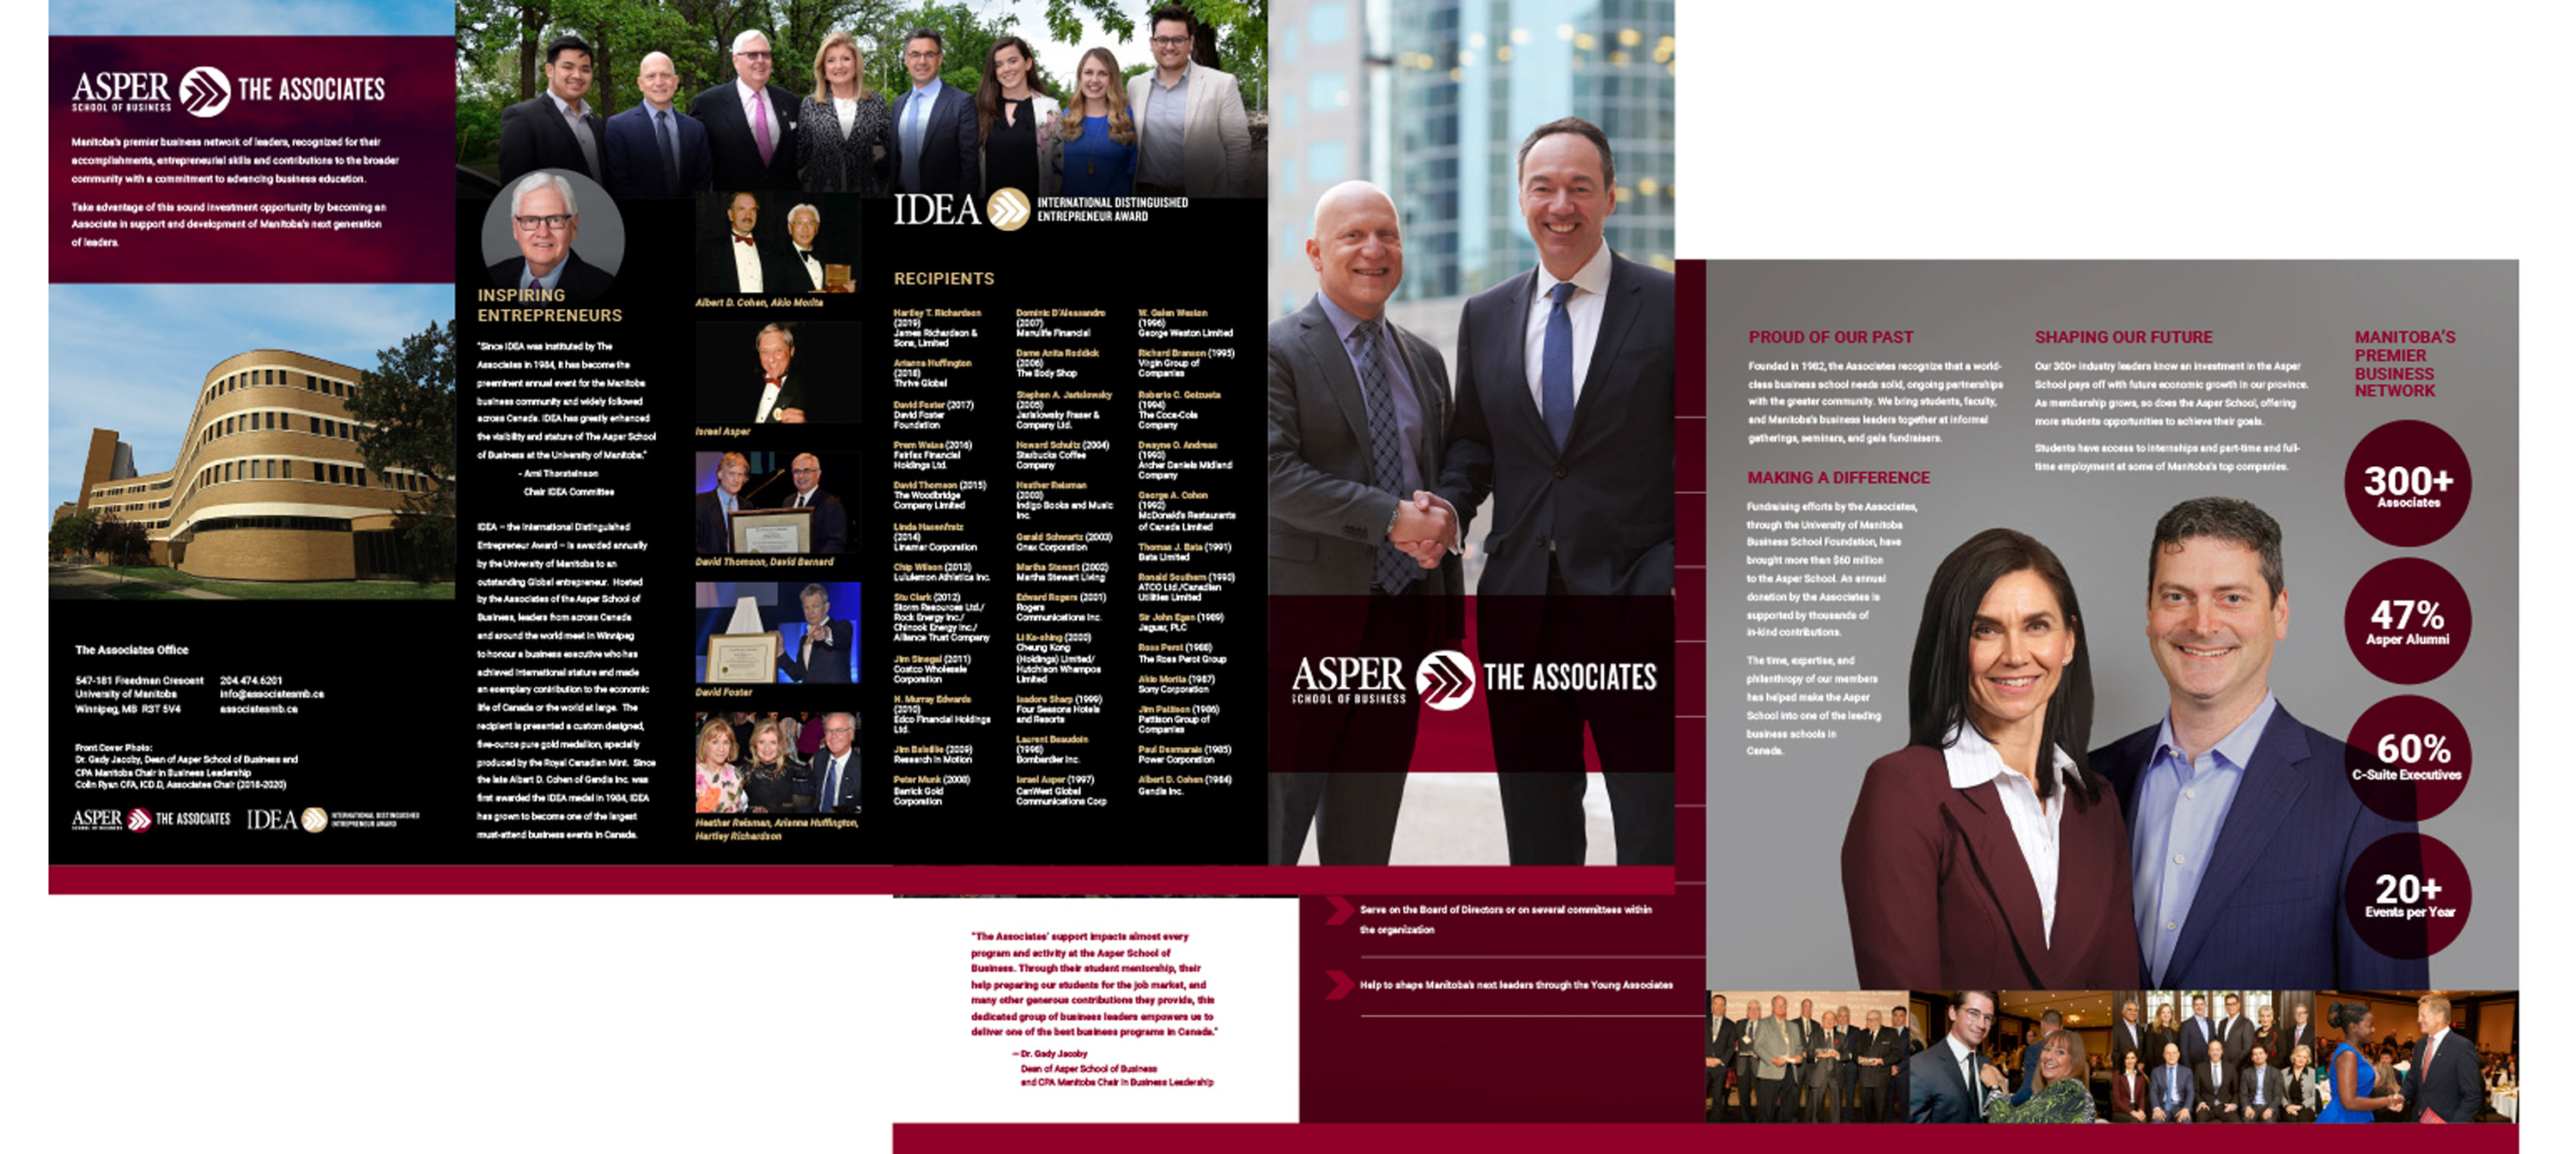 The Young Associates marketing materials designed by 6P Marketing